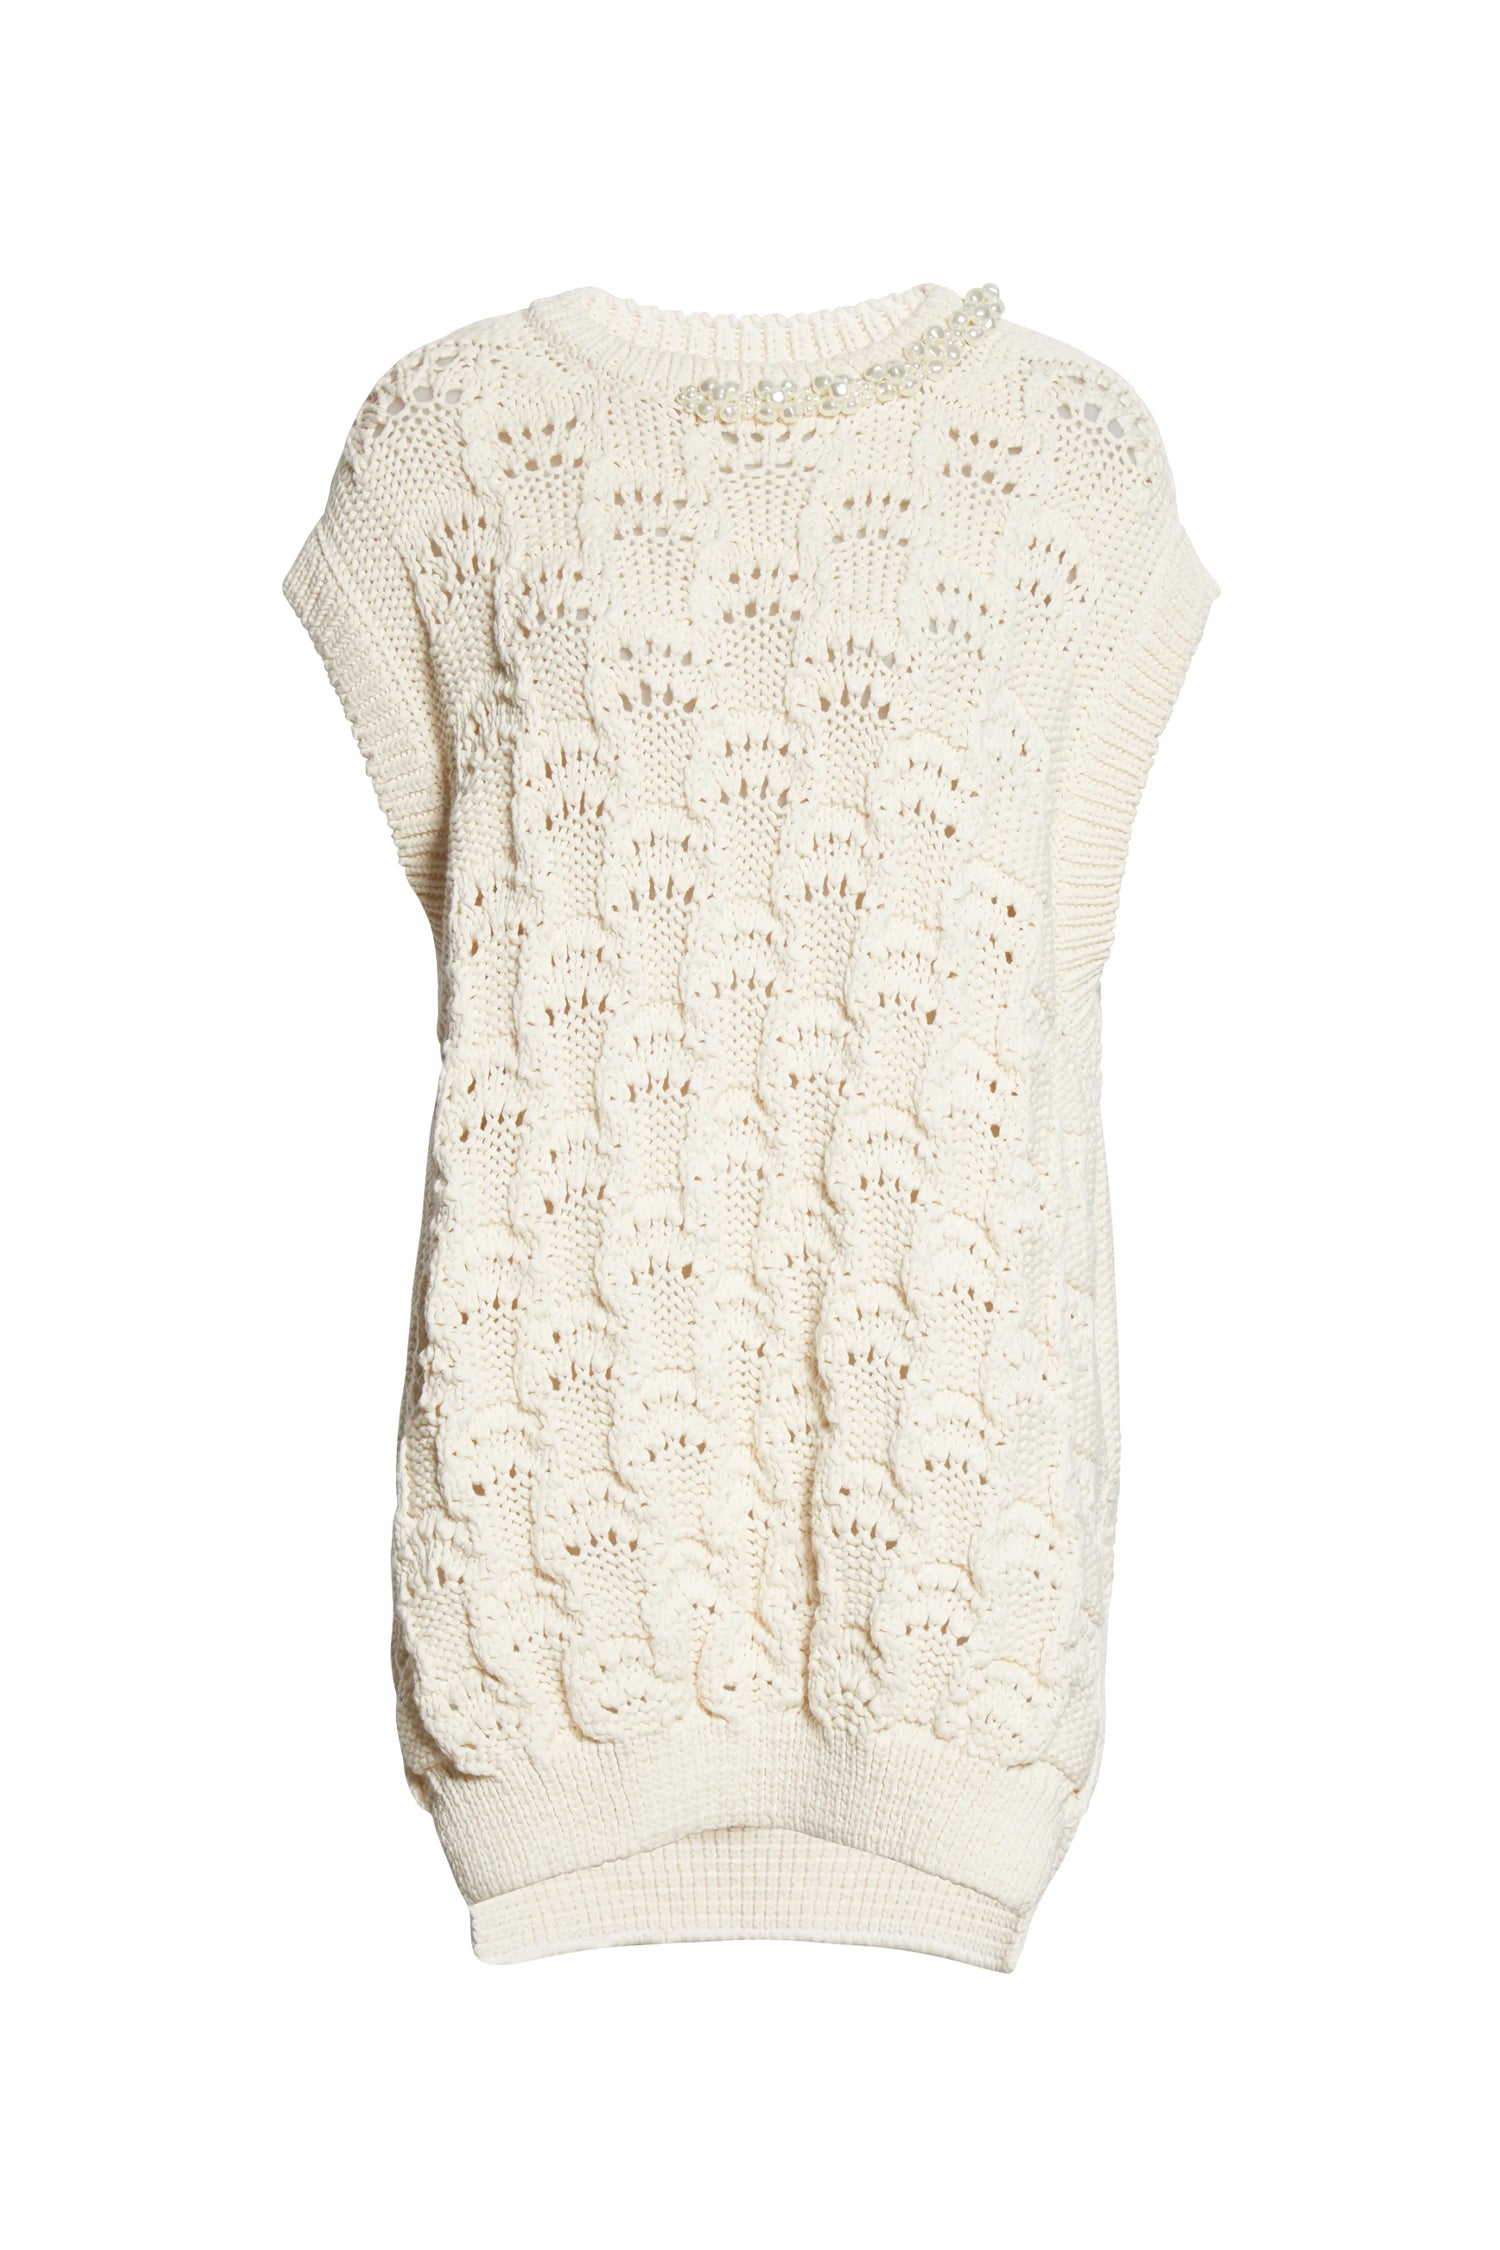 EMBELLISHED OVERSIZED BUBBLE VEST (S21)